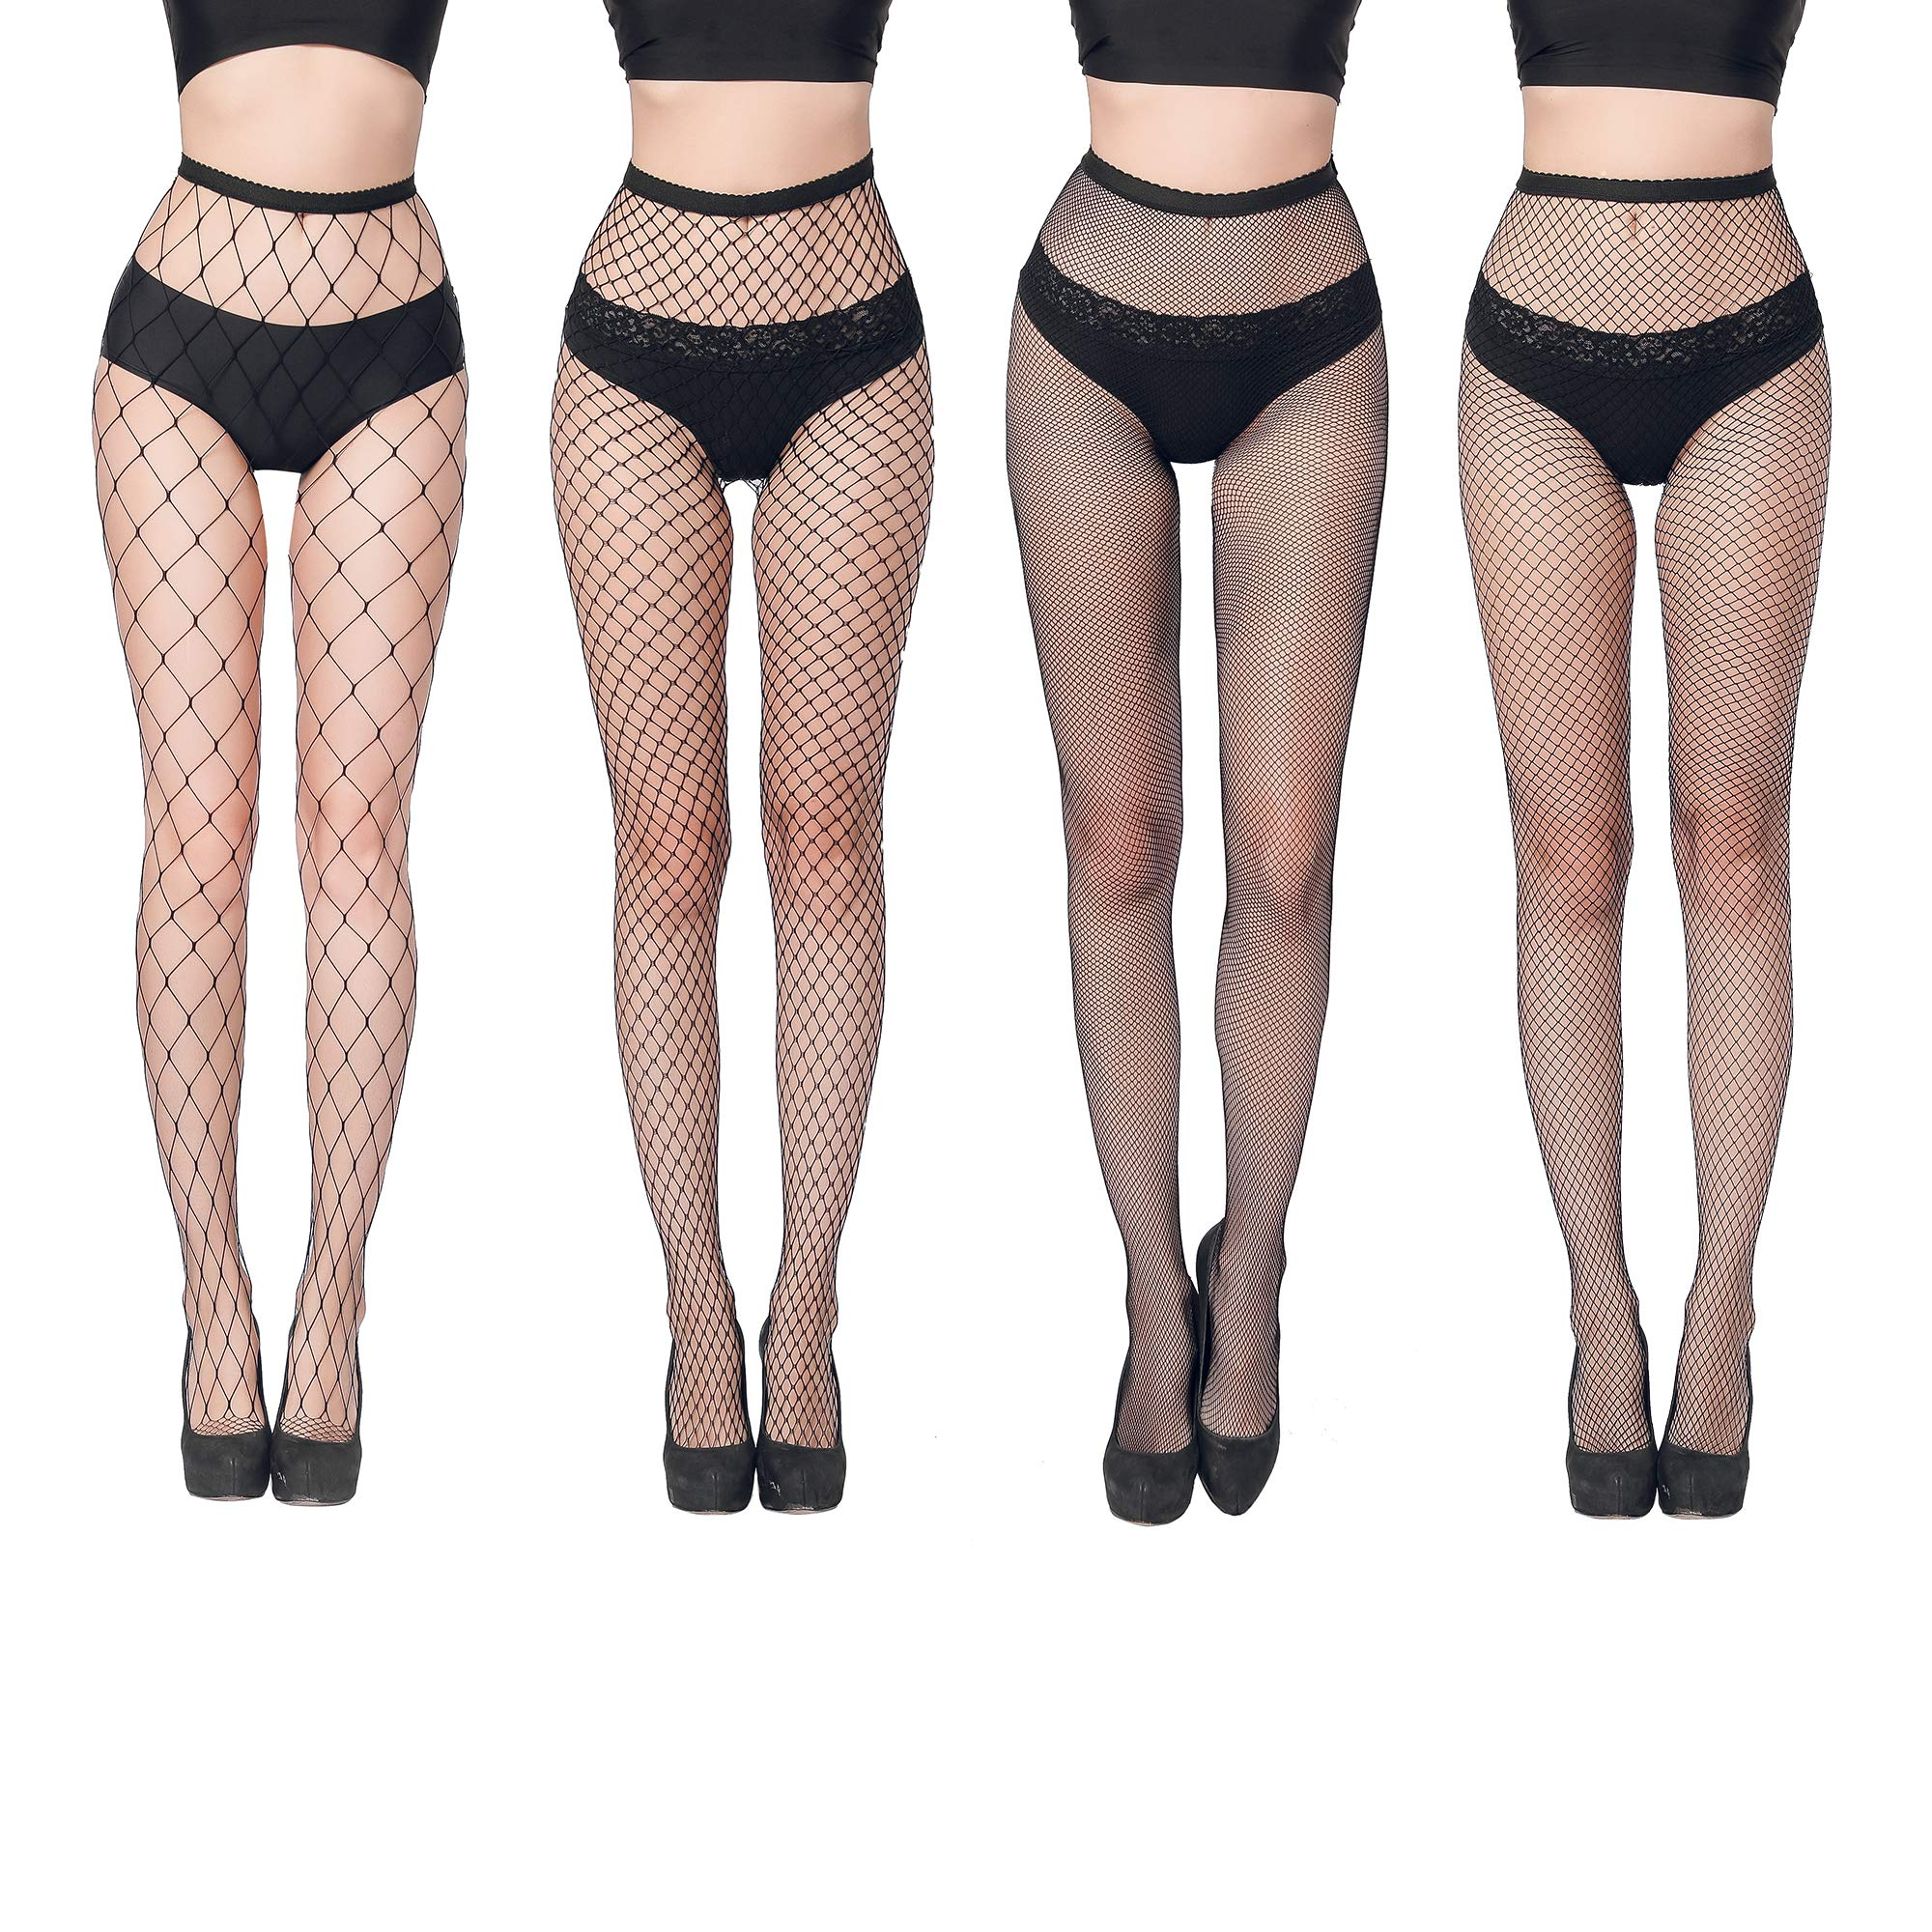 Fishnet Tights Stockings for Women-High Waist Sexy Fishnet Socks Pantyhose 4 Pairs Different Styles for Dancing Party GARTOL